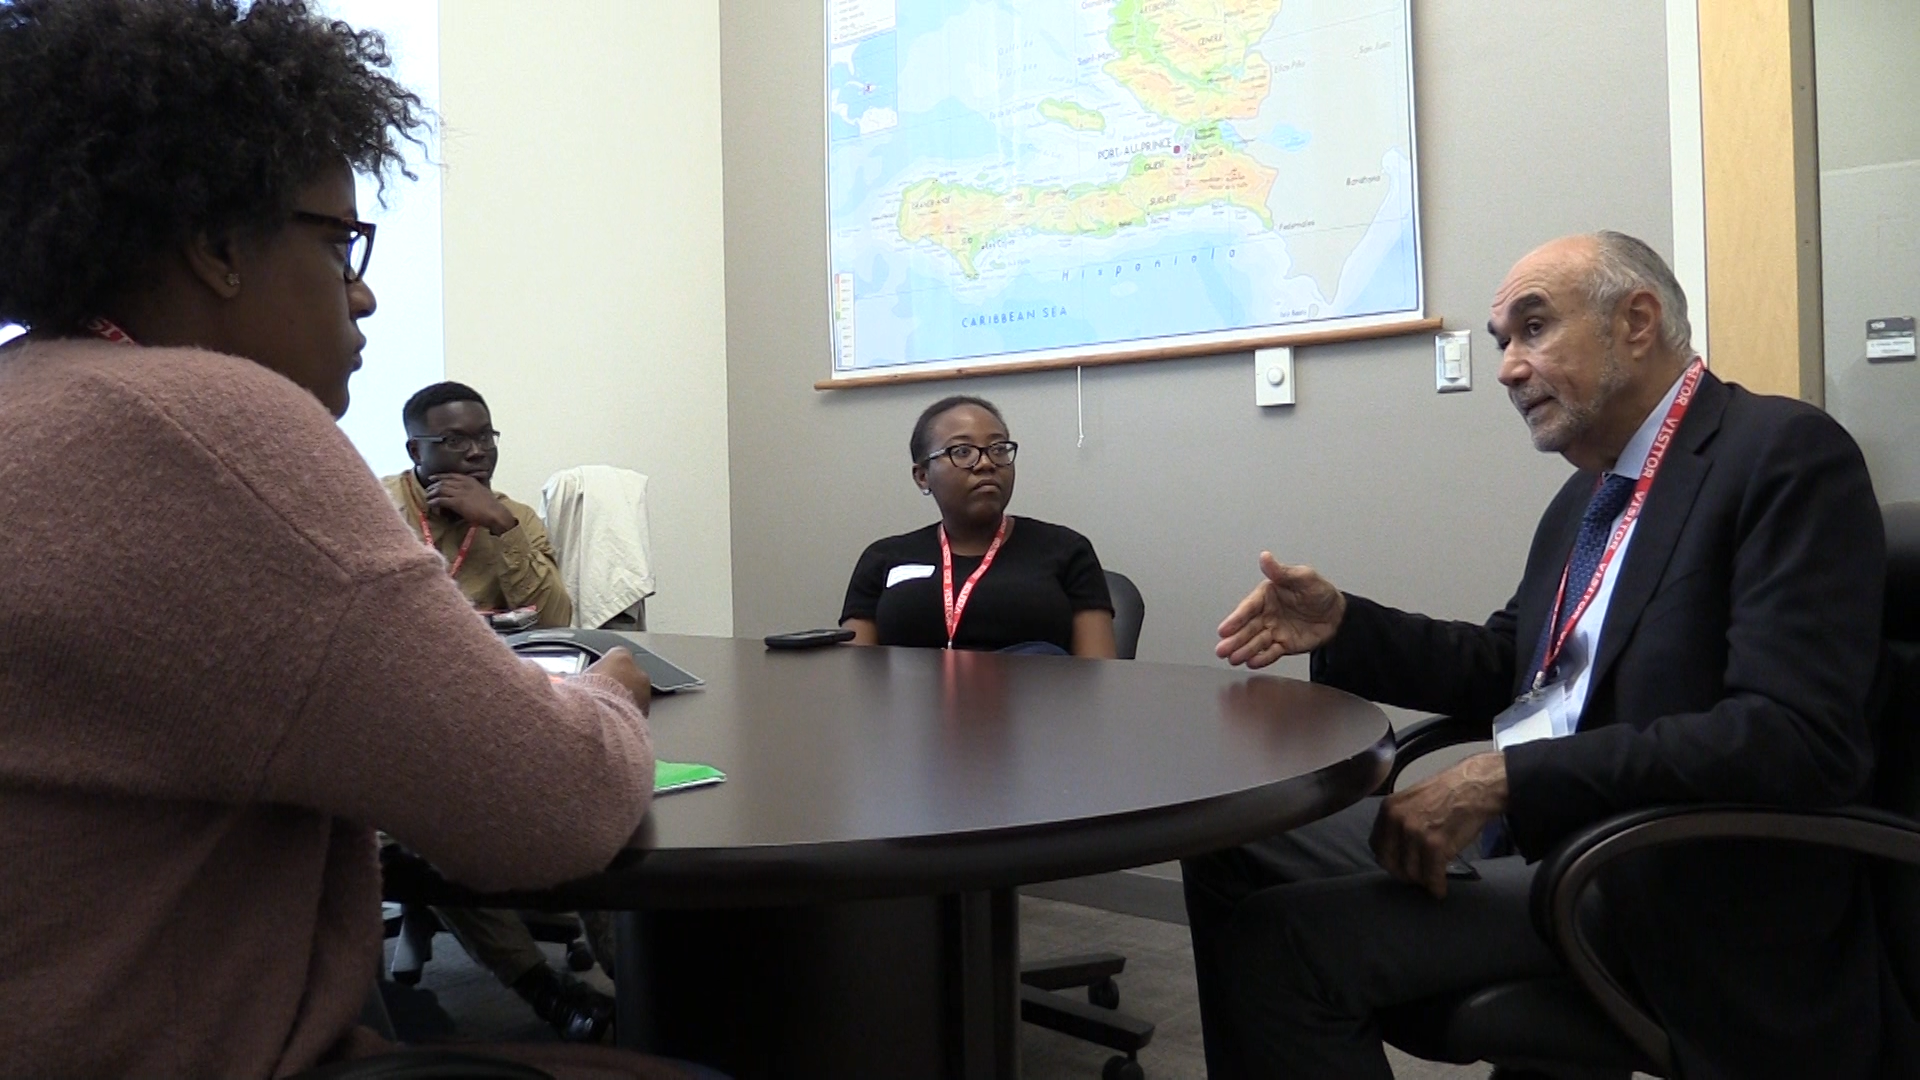 GHESKIO director meets with Haitian student group during EPI Research Day